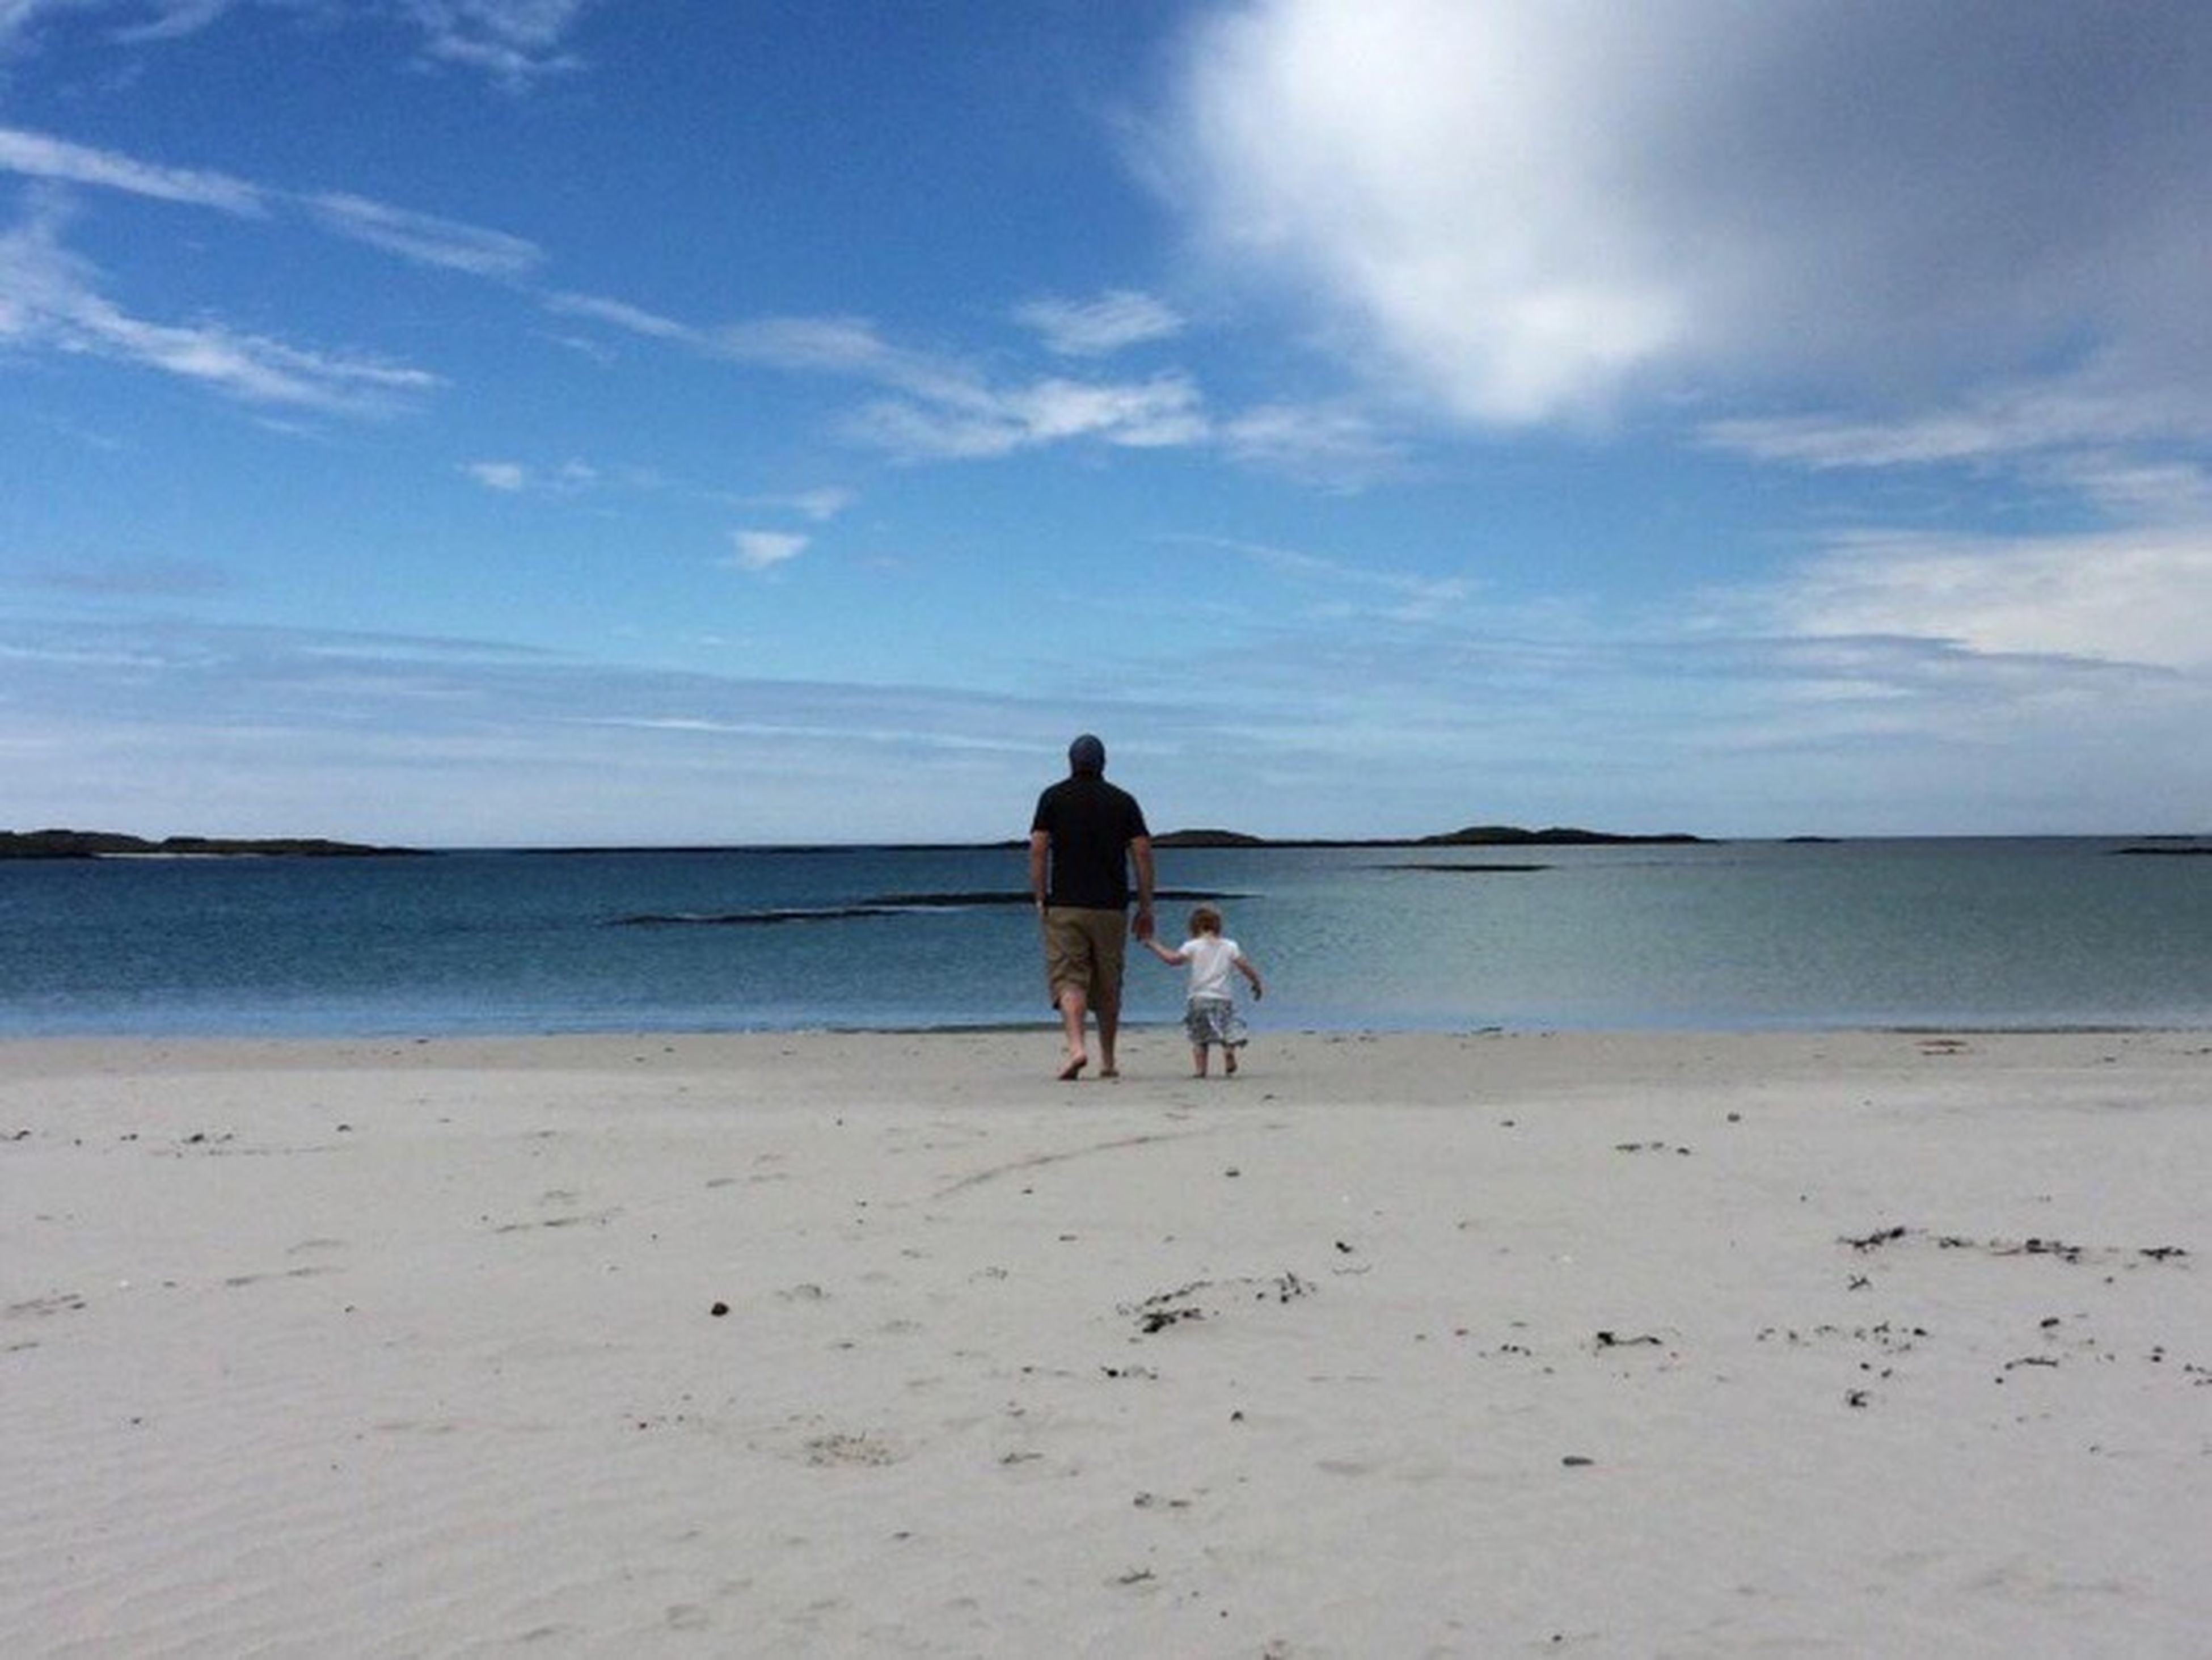 Beach Sea Sky Sand Togetherness Real People Horizon Over Water Nature Leisure Activity Men Love Rear View Full Length Bonding Family With One Child Pets Beauty In Nature Lifestyles Walking Water Father And Daughter Scotland